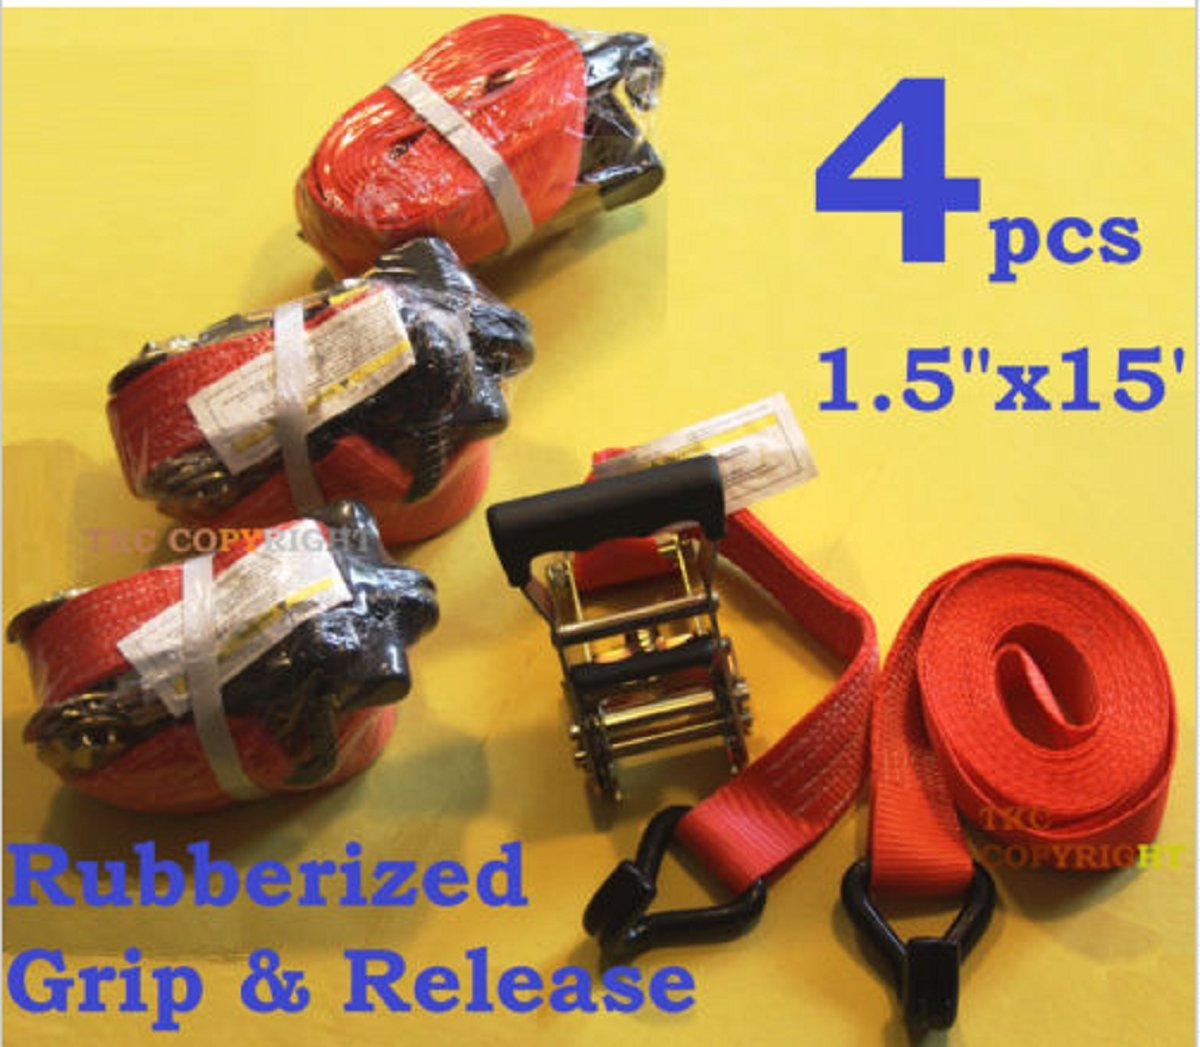 USA Premium Store 4PC 1-1/2'' x 15 ft Heavy Duty Ratchet Cargo Tie Down Straps 3000lbs Dual J-Hooks by USA Premium Store